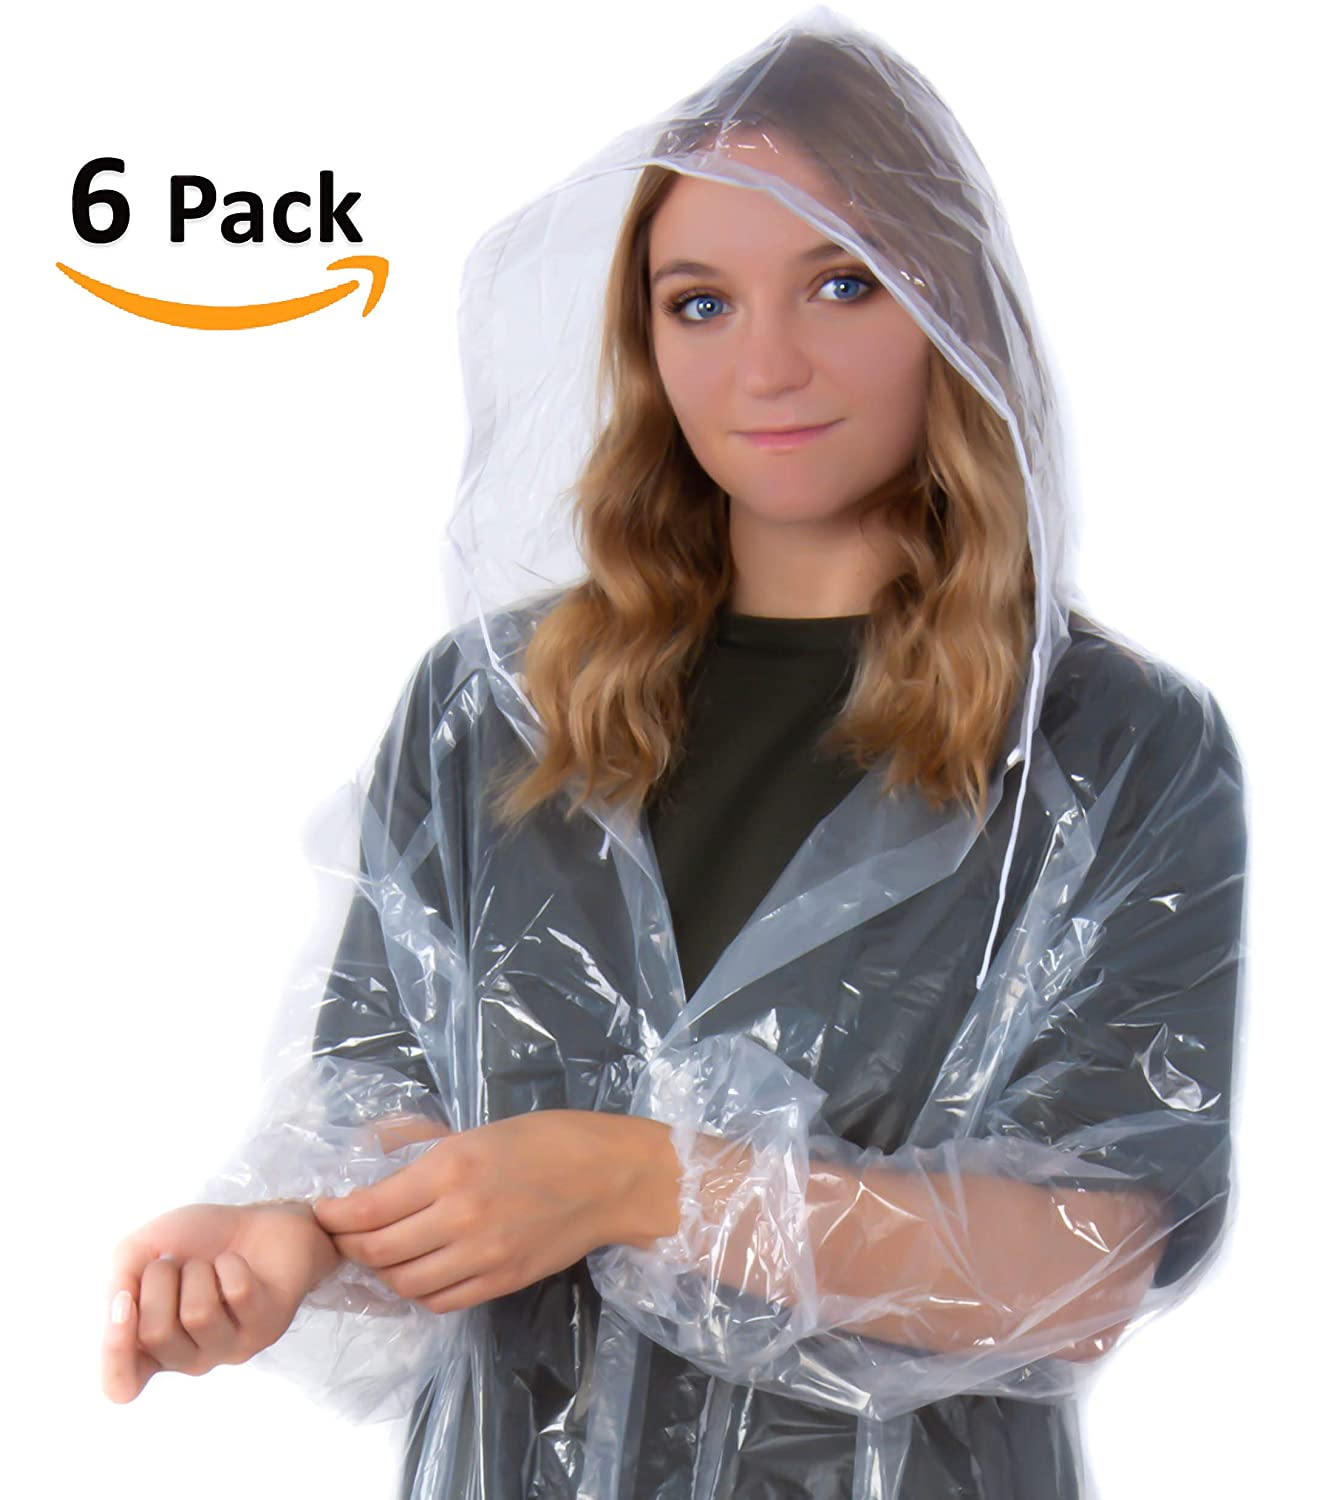 Suniry RAIN Poncho | Clear Disposable Adult Raincoat for Mens & Womens with Hood | Emergency Gear Lightweight Ponchos | 6 Pack!